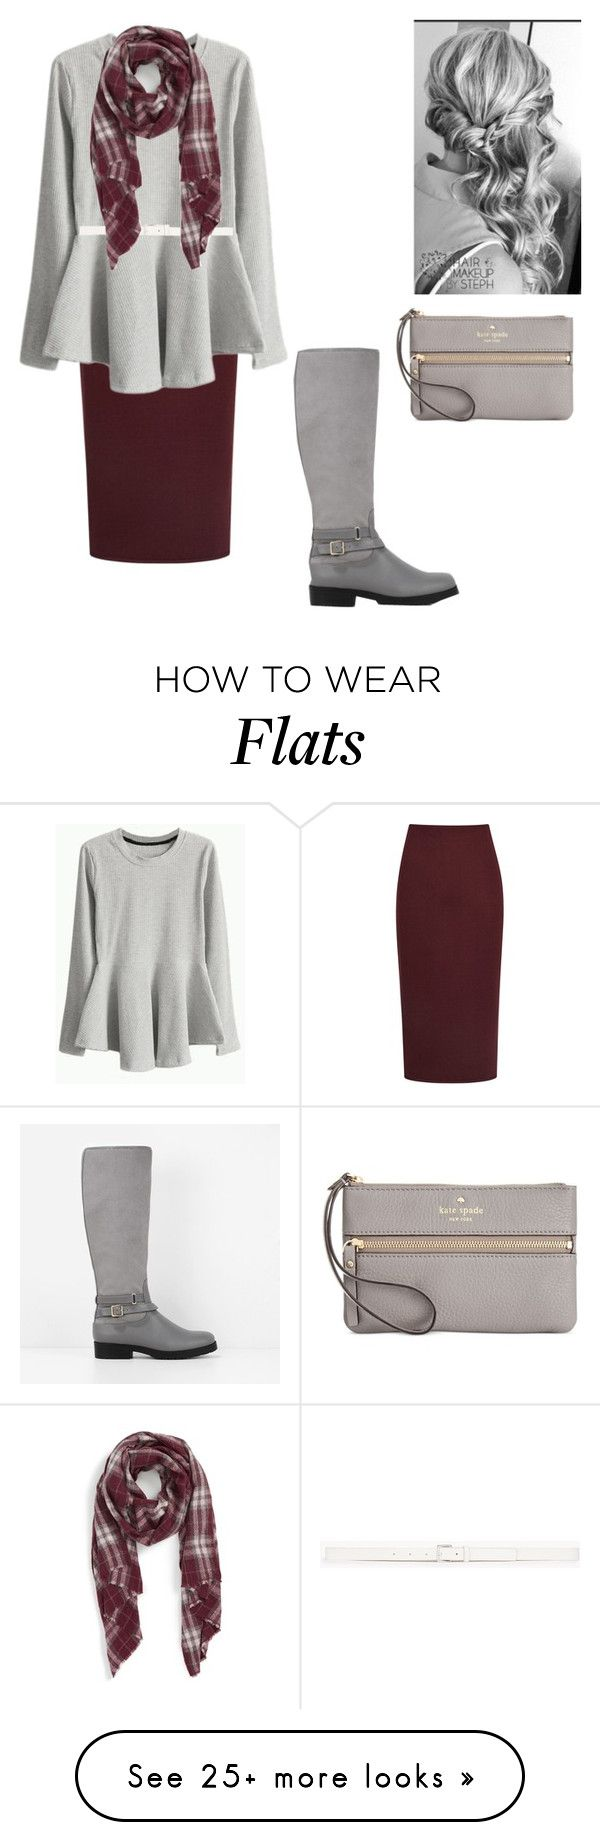 """brr"" by apostolic-country-girl-98 on Polyvore featuring Reiss, Reception, Theory, Sole Society, CHARLES & KEITH and Kate Spade"